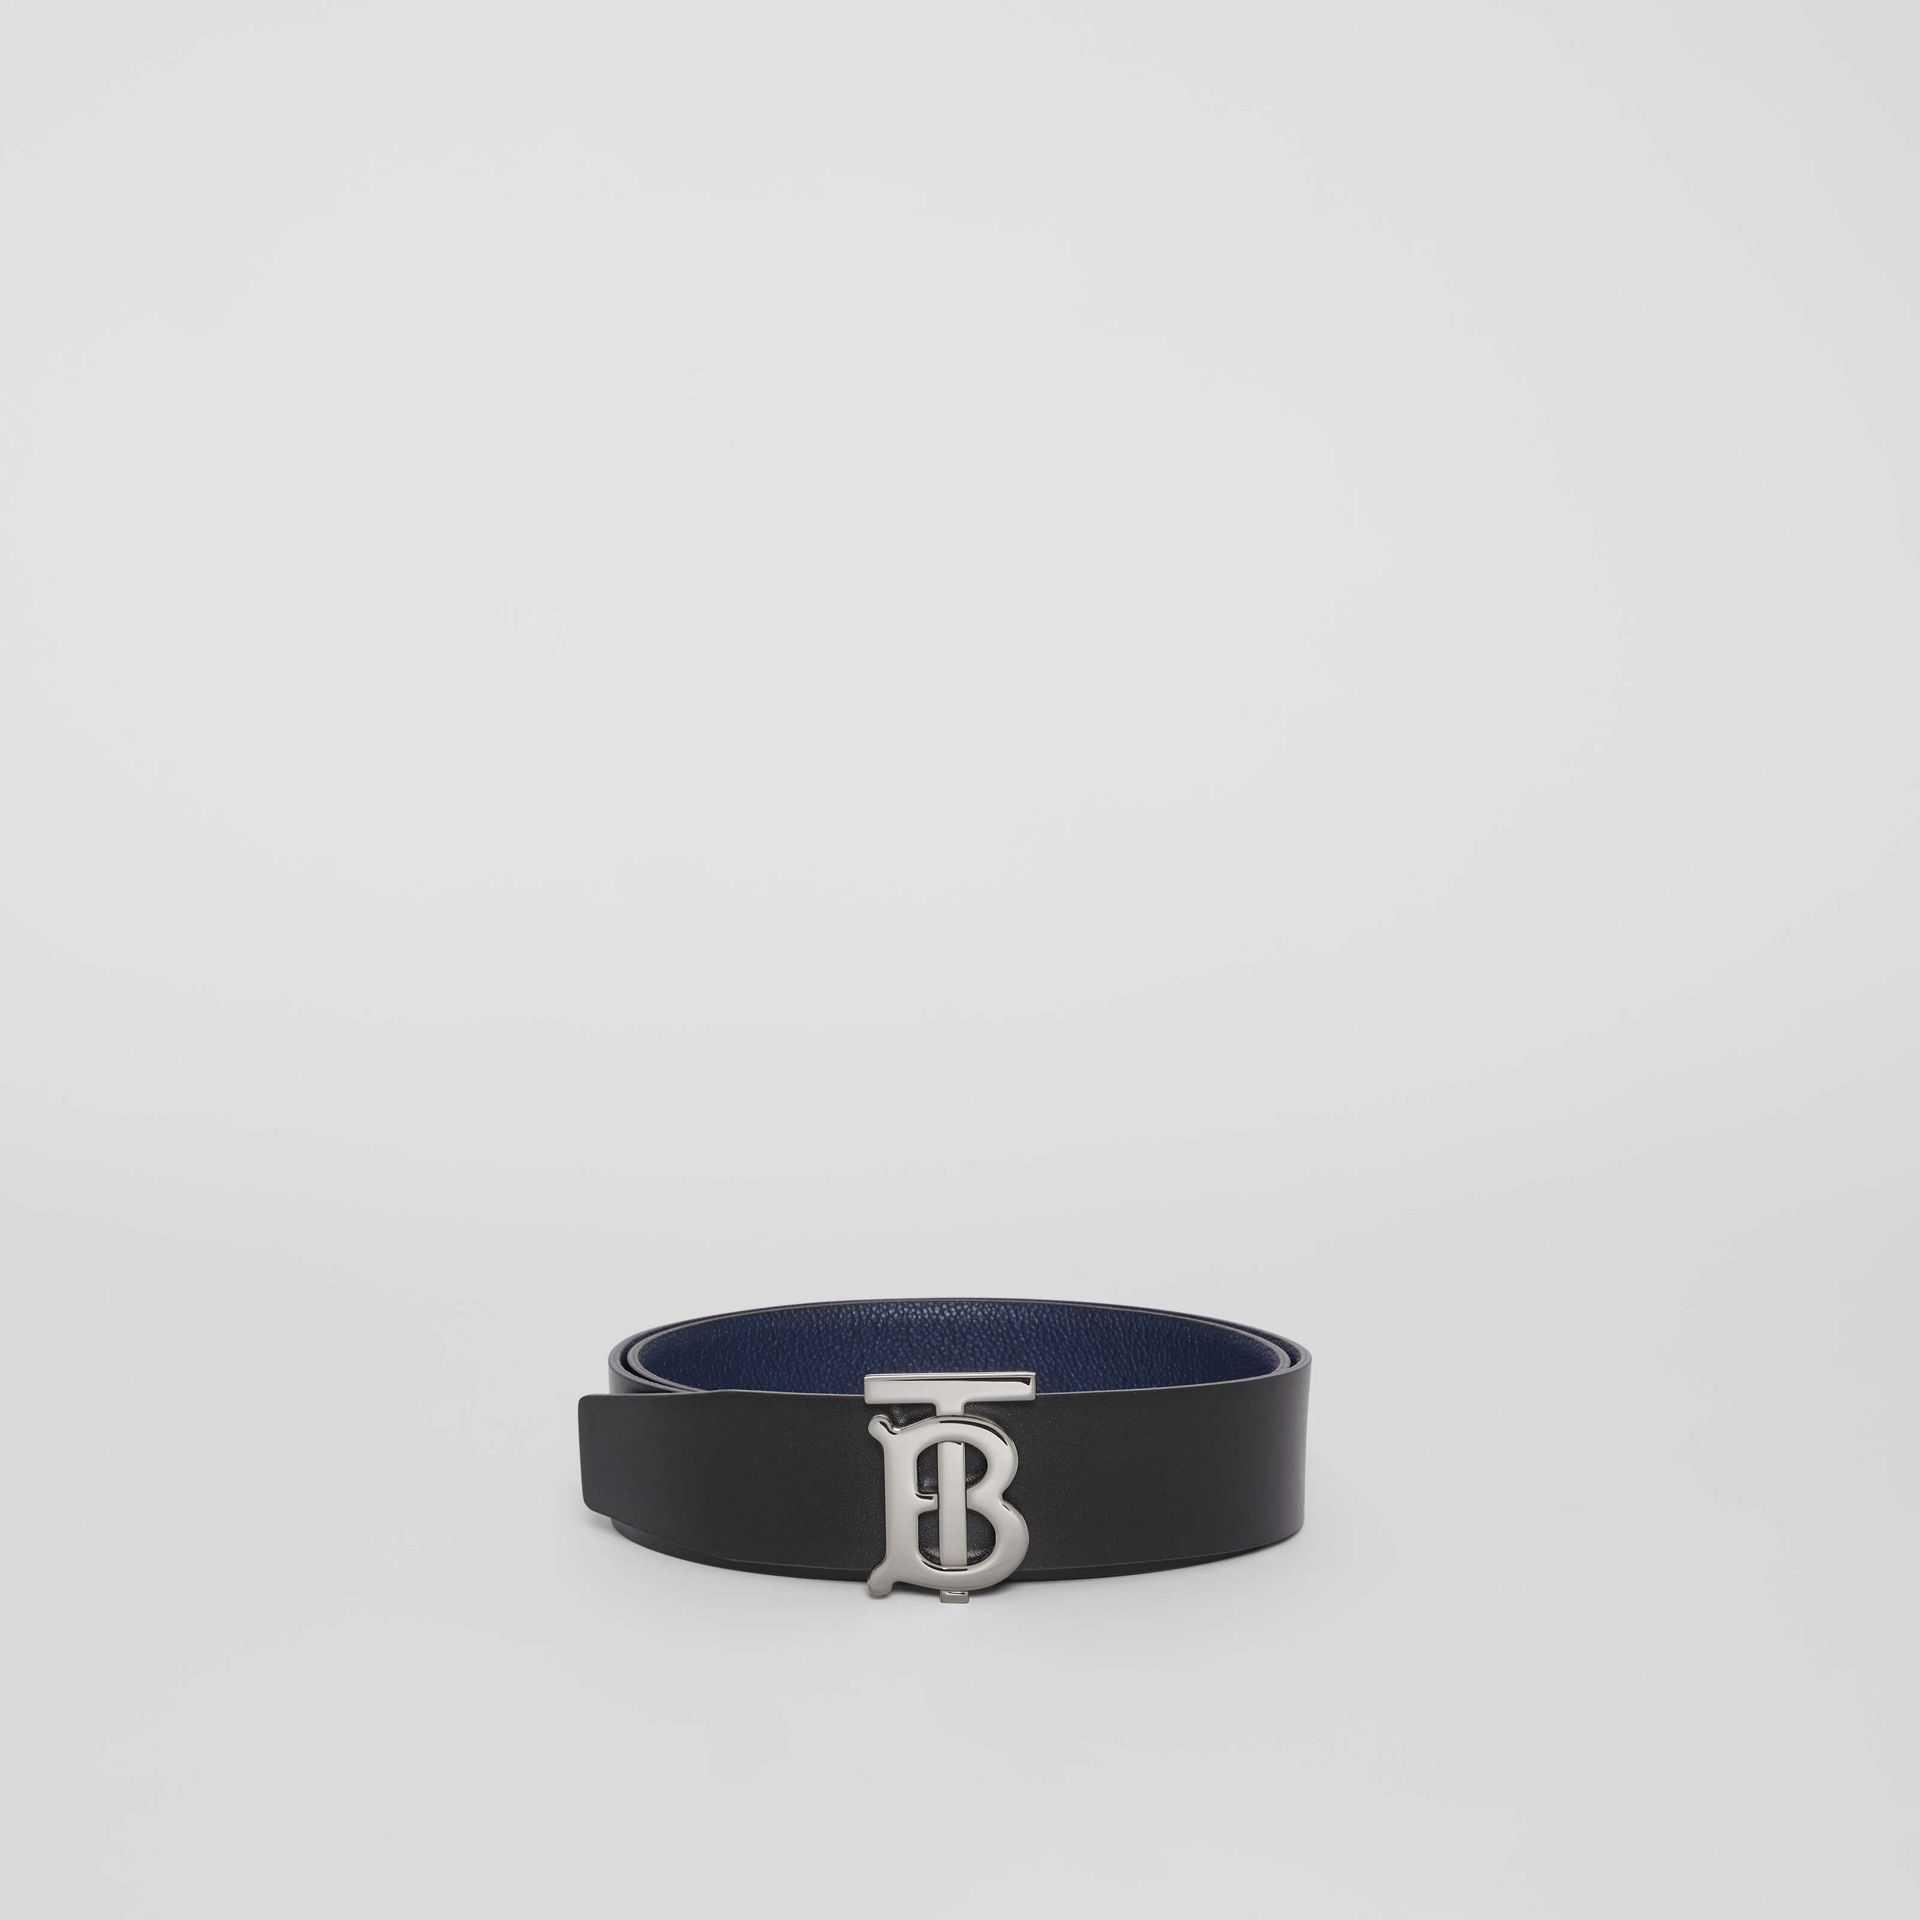 Reversible Monogram Motif Leather Belt in Navy/black - Men | Burberry Hong Kong S.A.R - gallery image 5